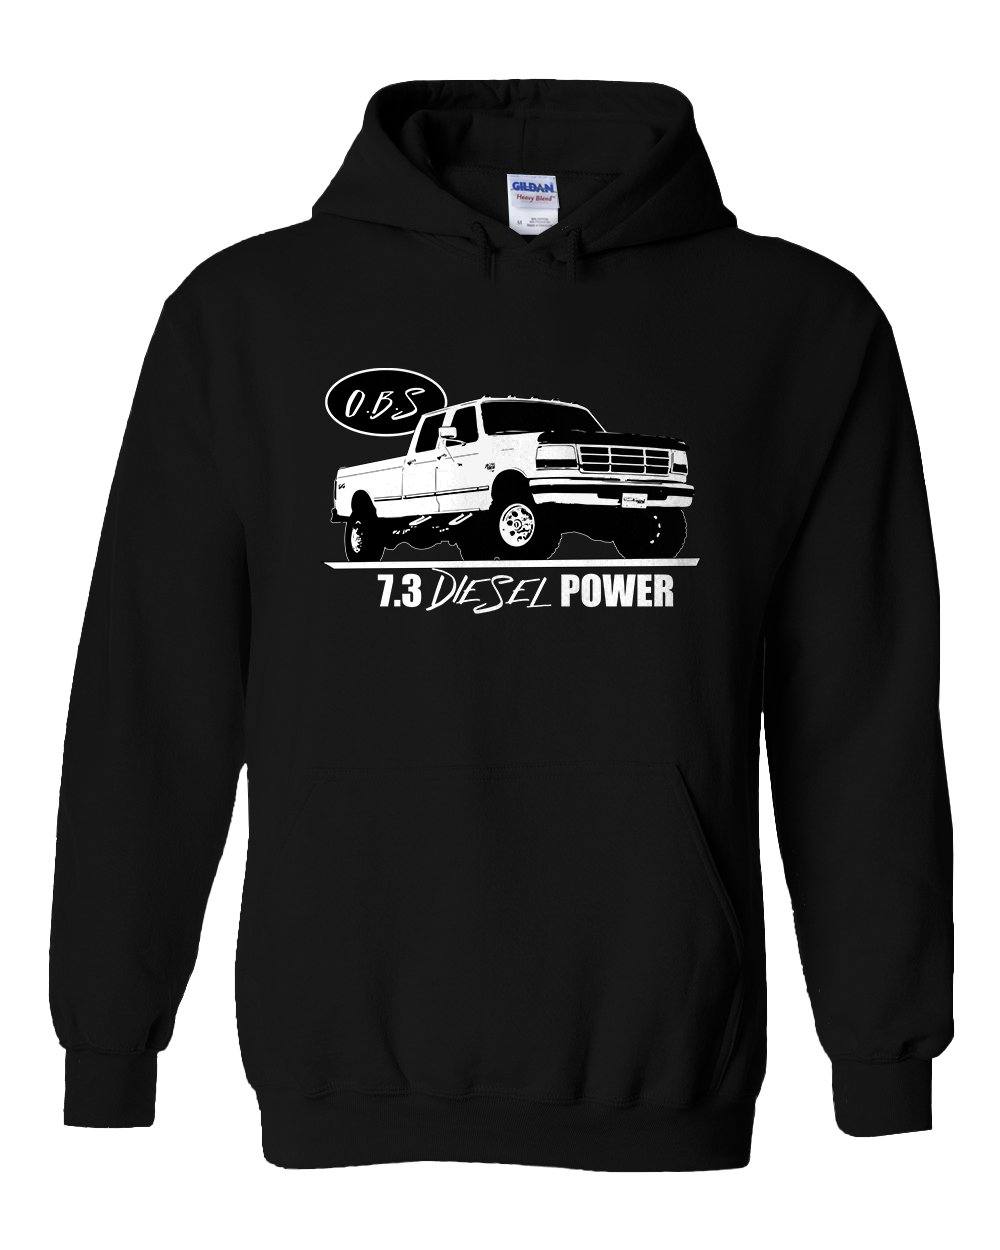 7.3 Power Stroke OBS Crew Cab Hoodie